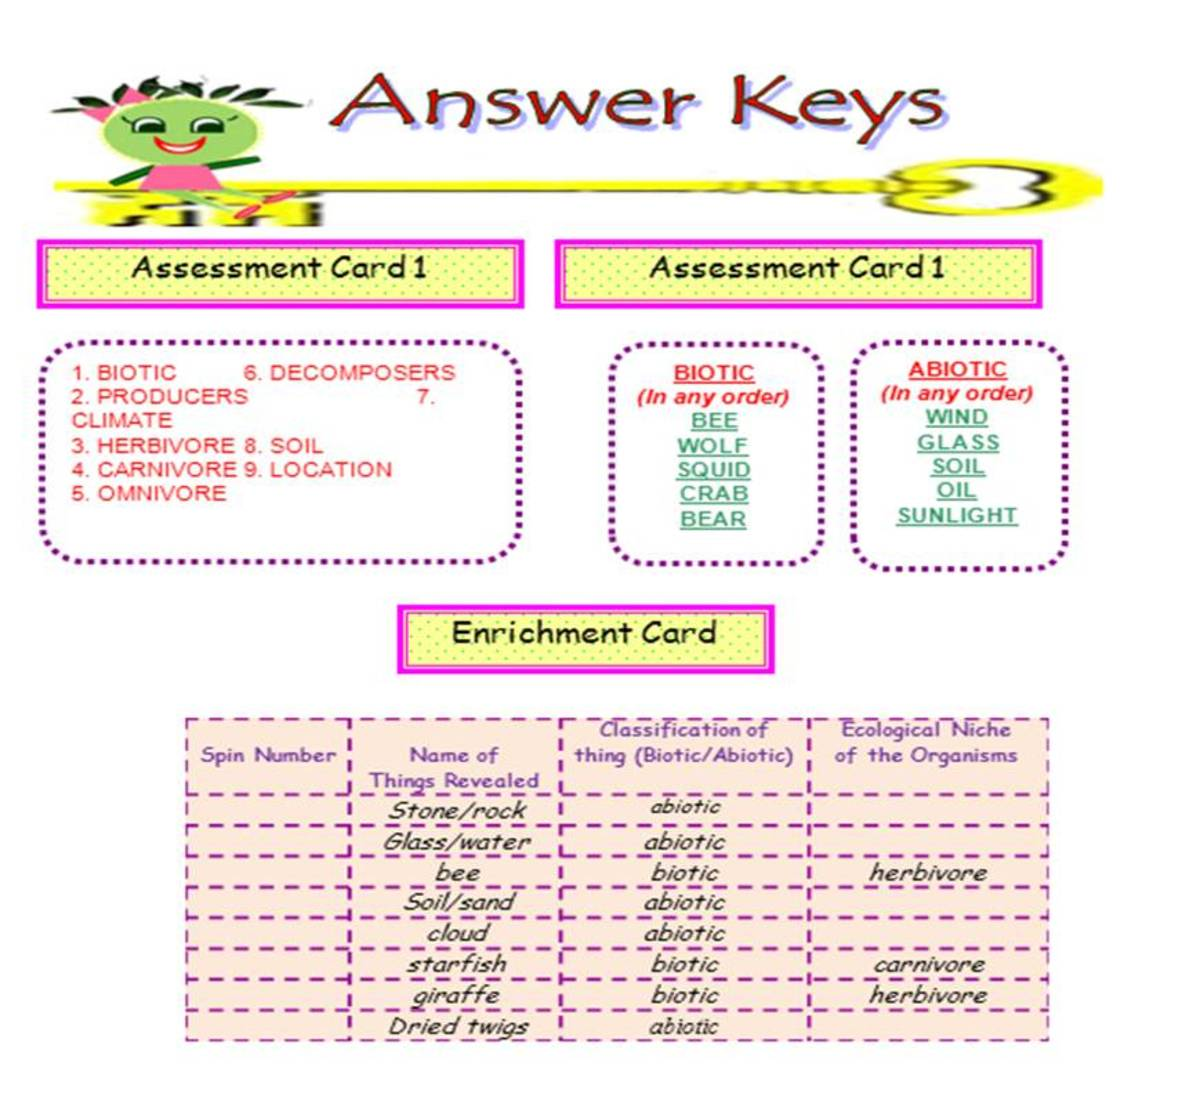 Answer keys include all the correct and possible answers to the activities included in the SIM.